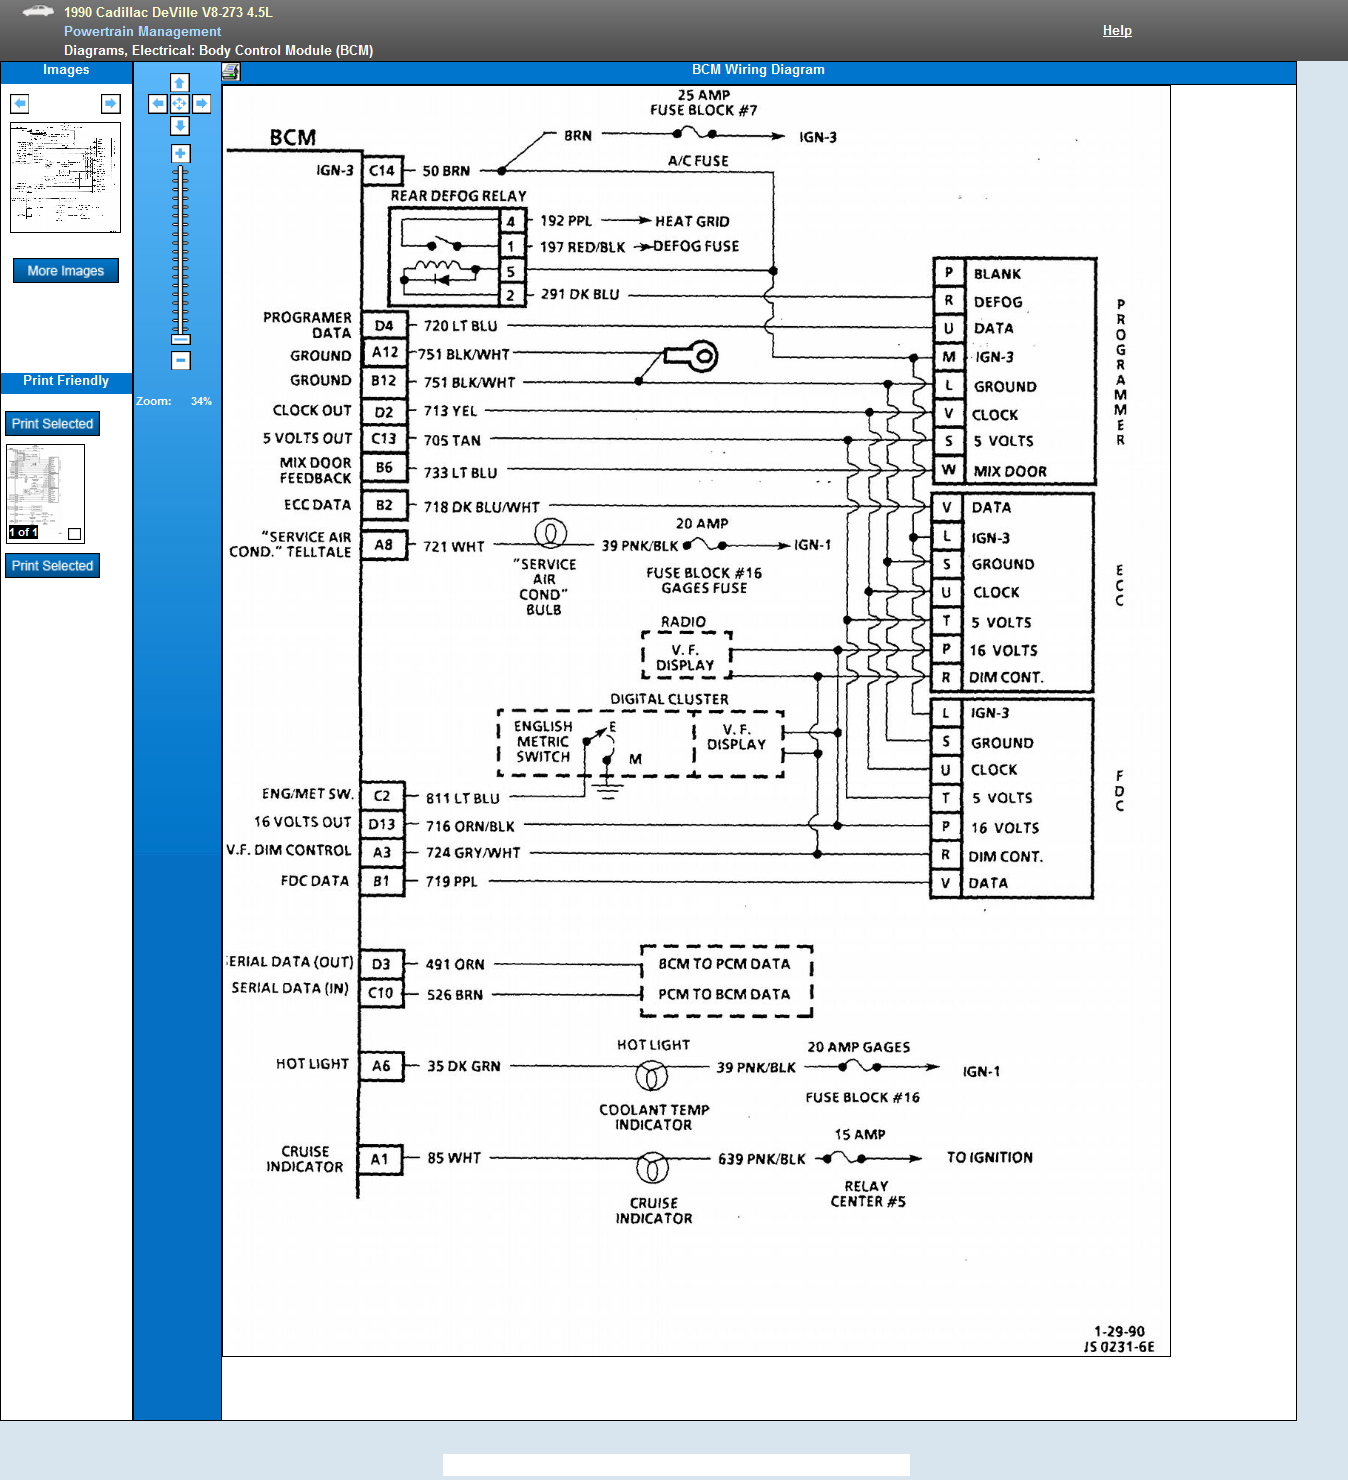 I Am Looking For The Body Control Module Diagram